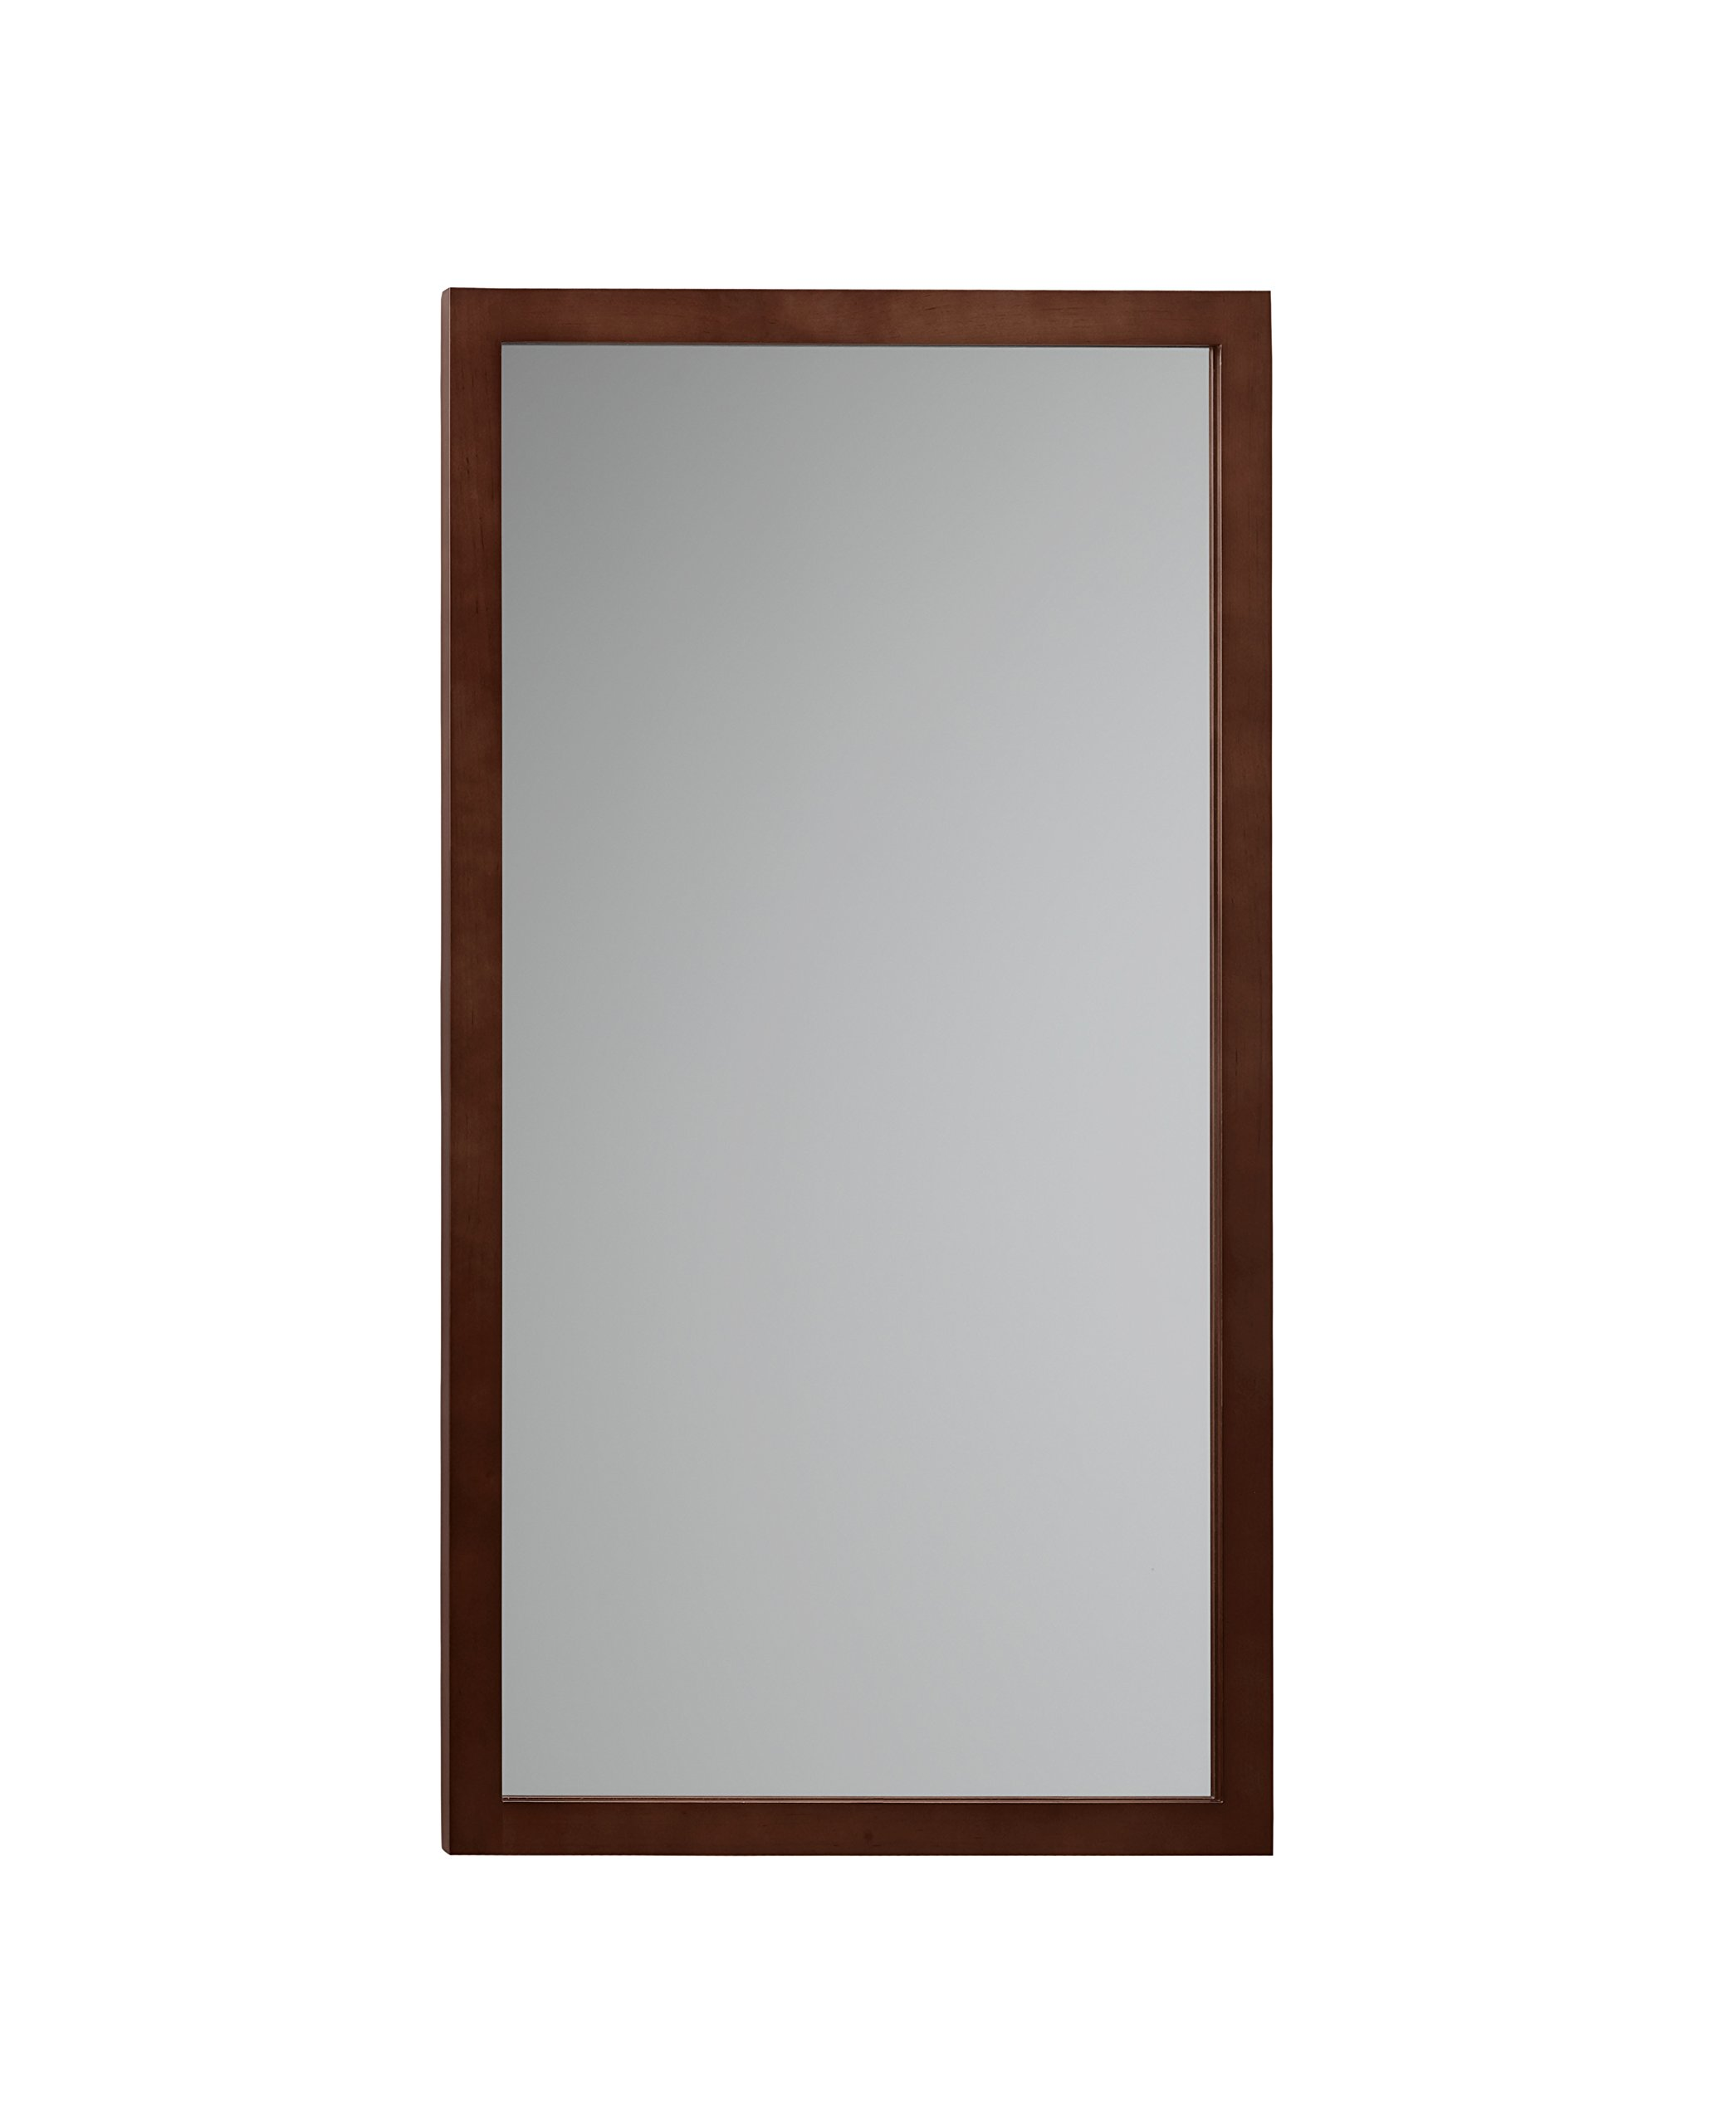 RONBOW Alina 17'' x 31'' Solid Wood Frame Wall Decor Rectangle Bathroom Mirror in Dark Cherry 600118-H01